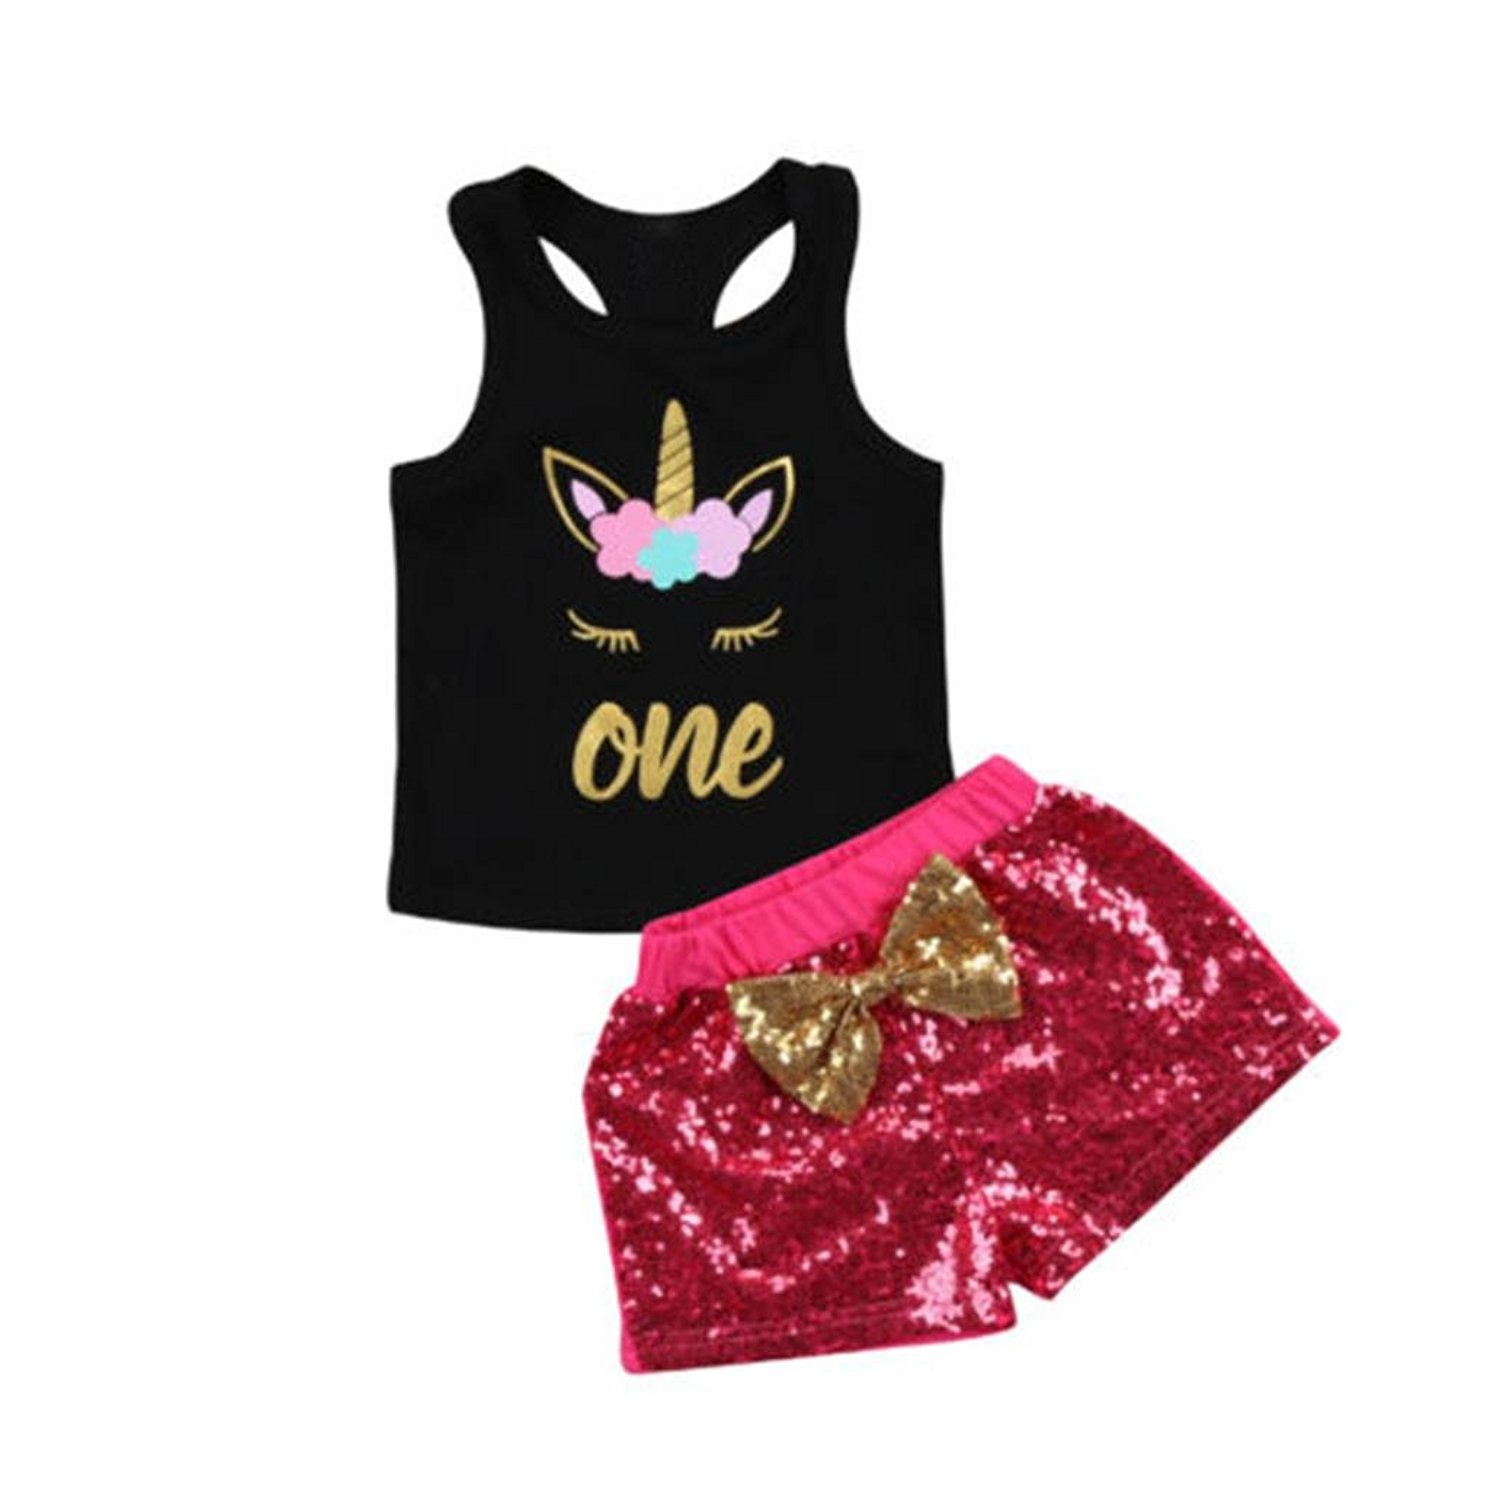 6f6459cd4c3 Get Quotations · Lavany Toddler Outfits 2PCS Kids Girl Unicorn Rackback  Tops Sequin Shorts Clothes Set